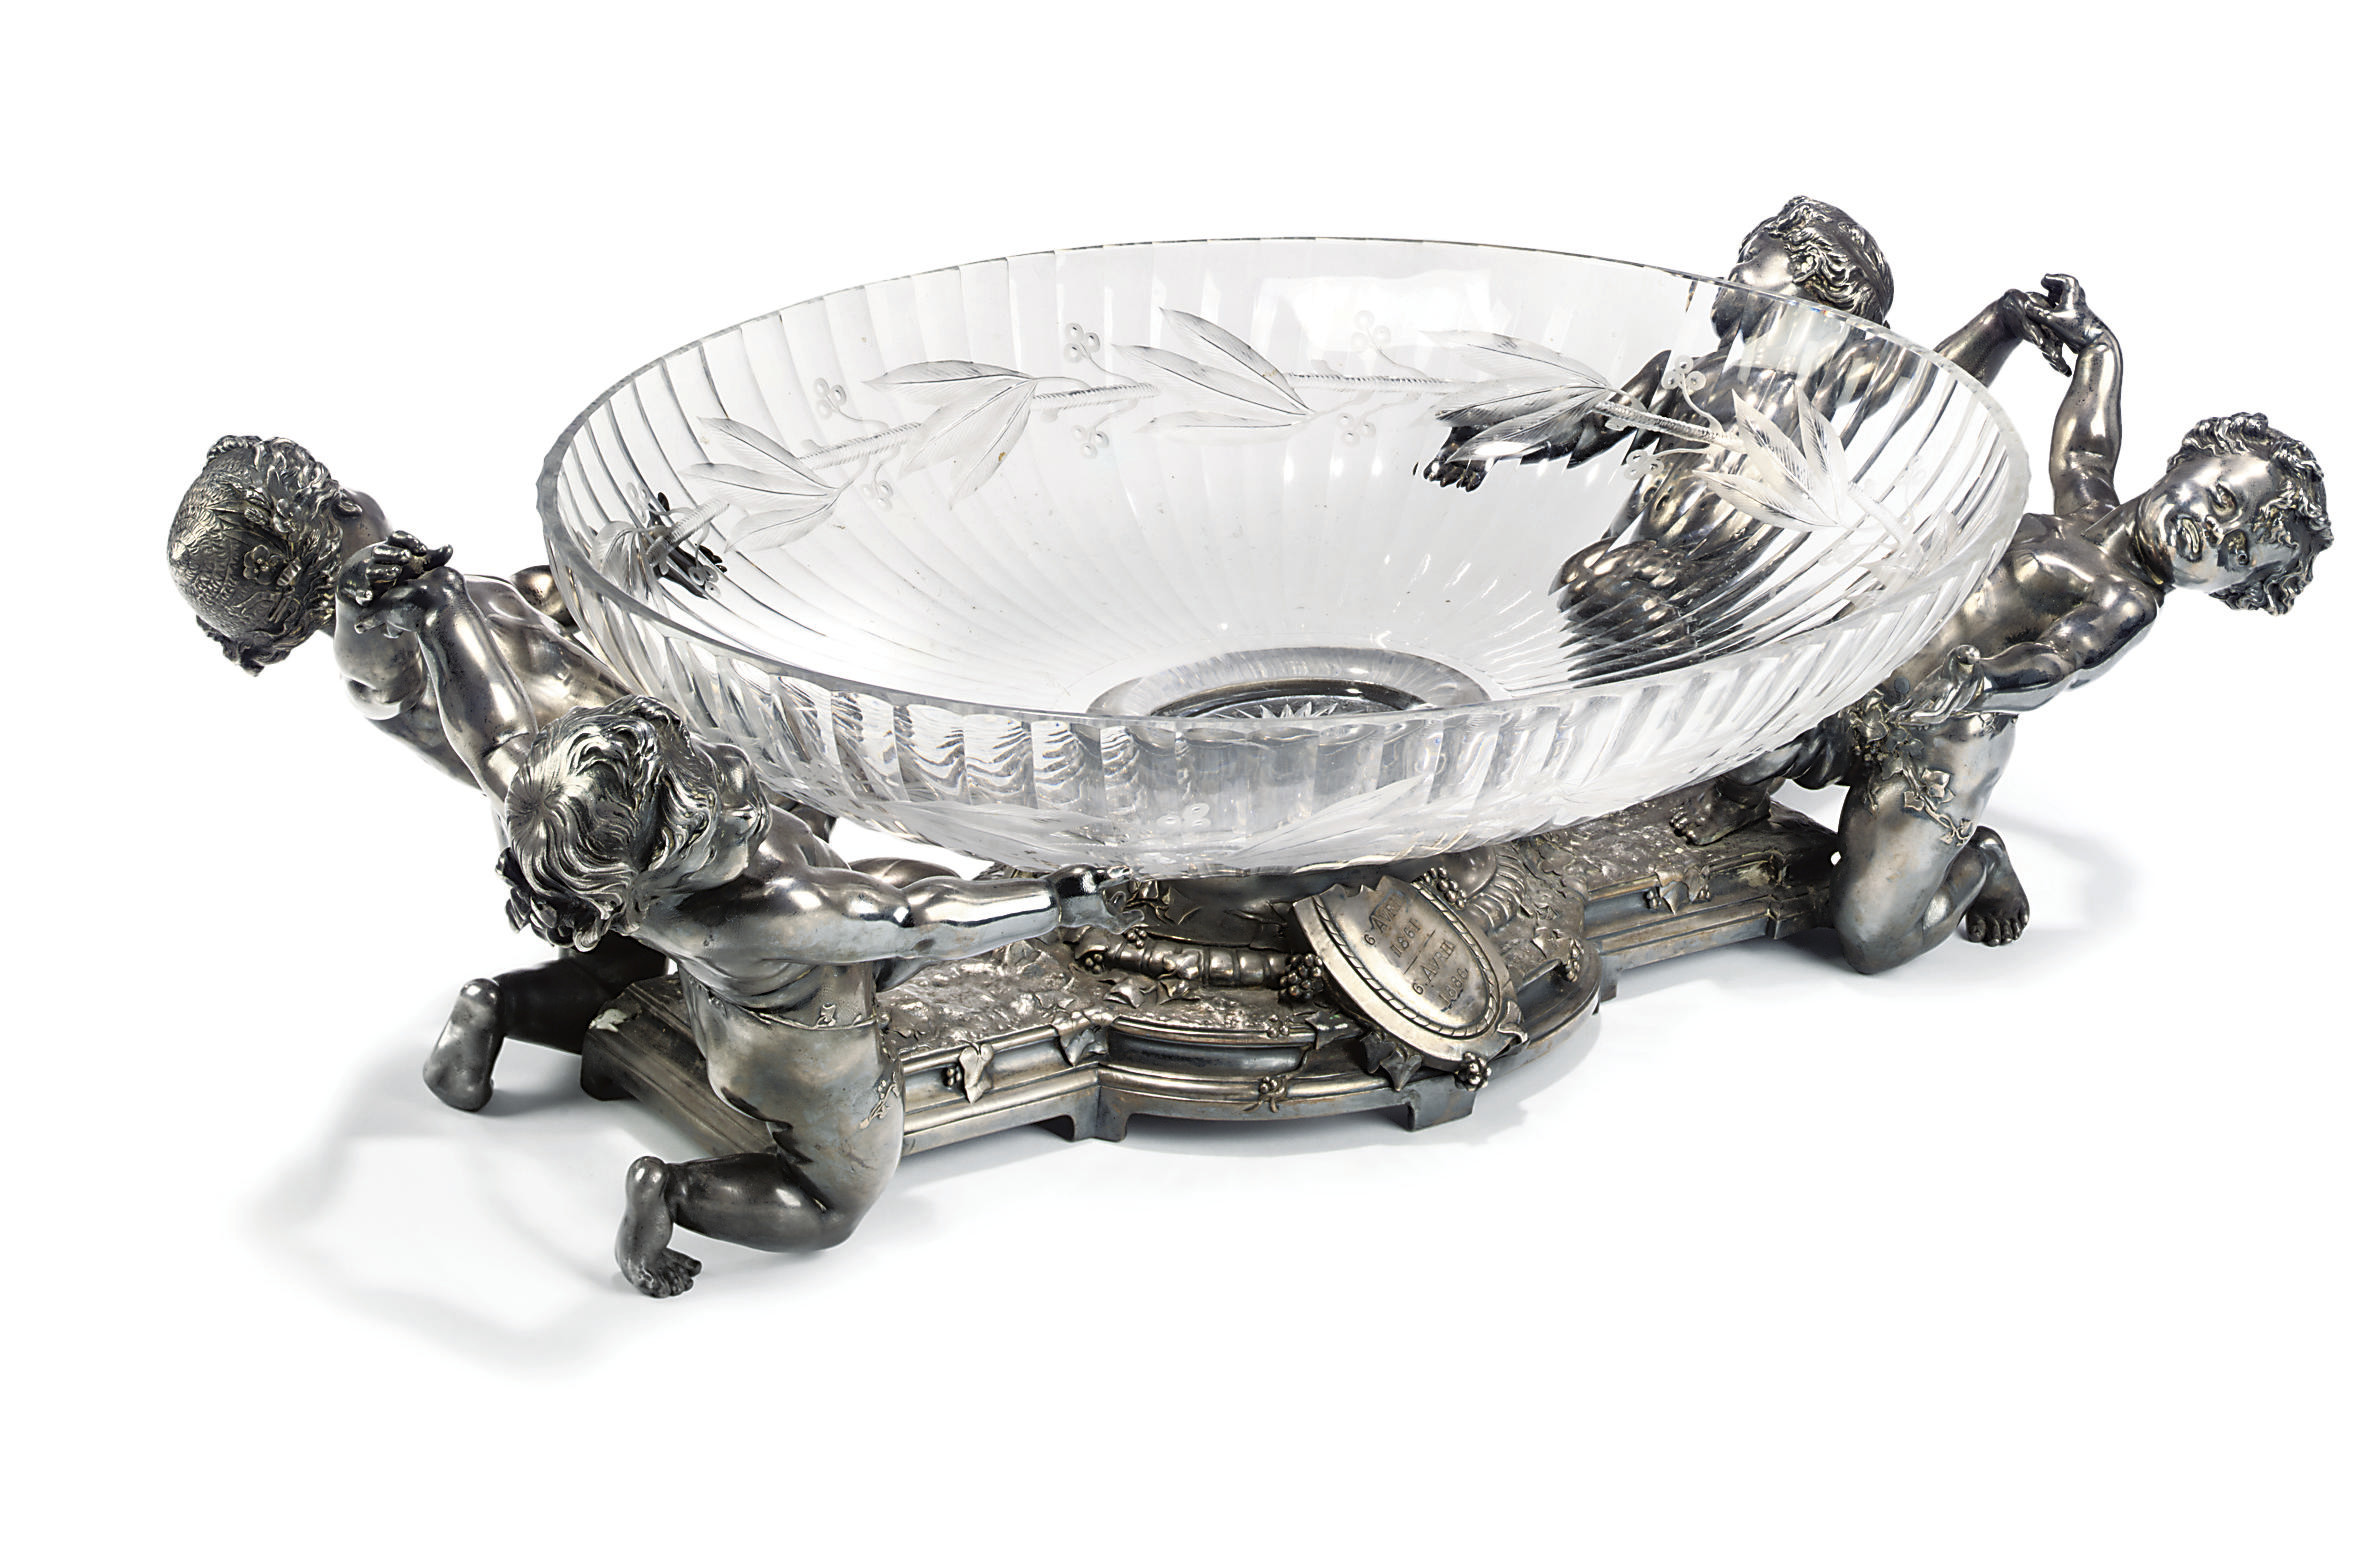 A FRENCH ELECTROPLATED AND CUT-GLASS CENTREPIECE